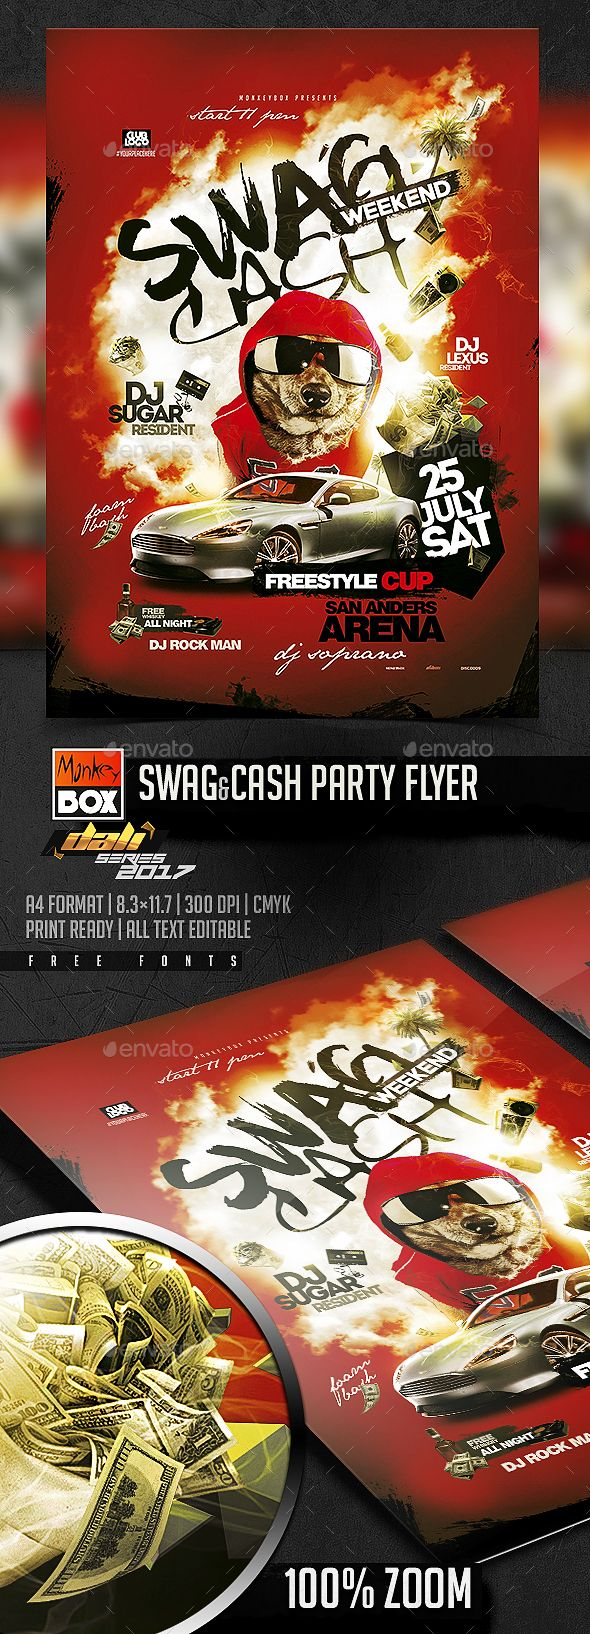 Swag&Cash Party Flyer | Party flyer, Flyer template and Flyer printing